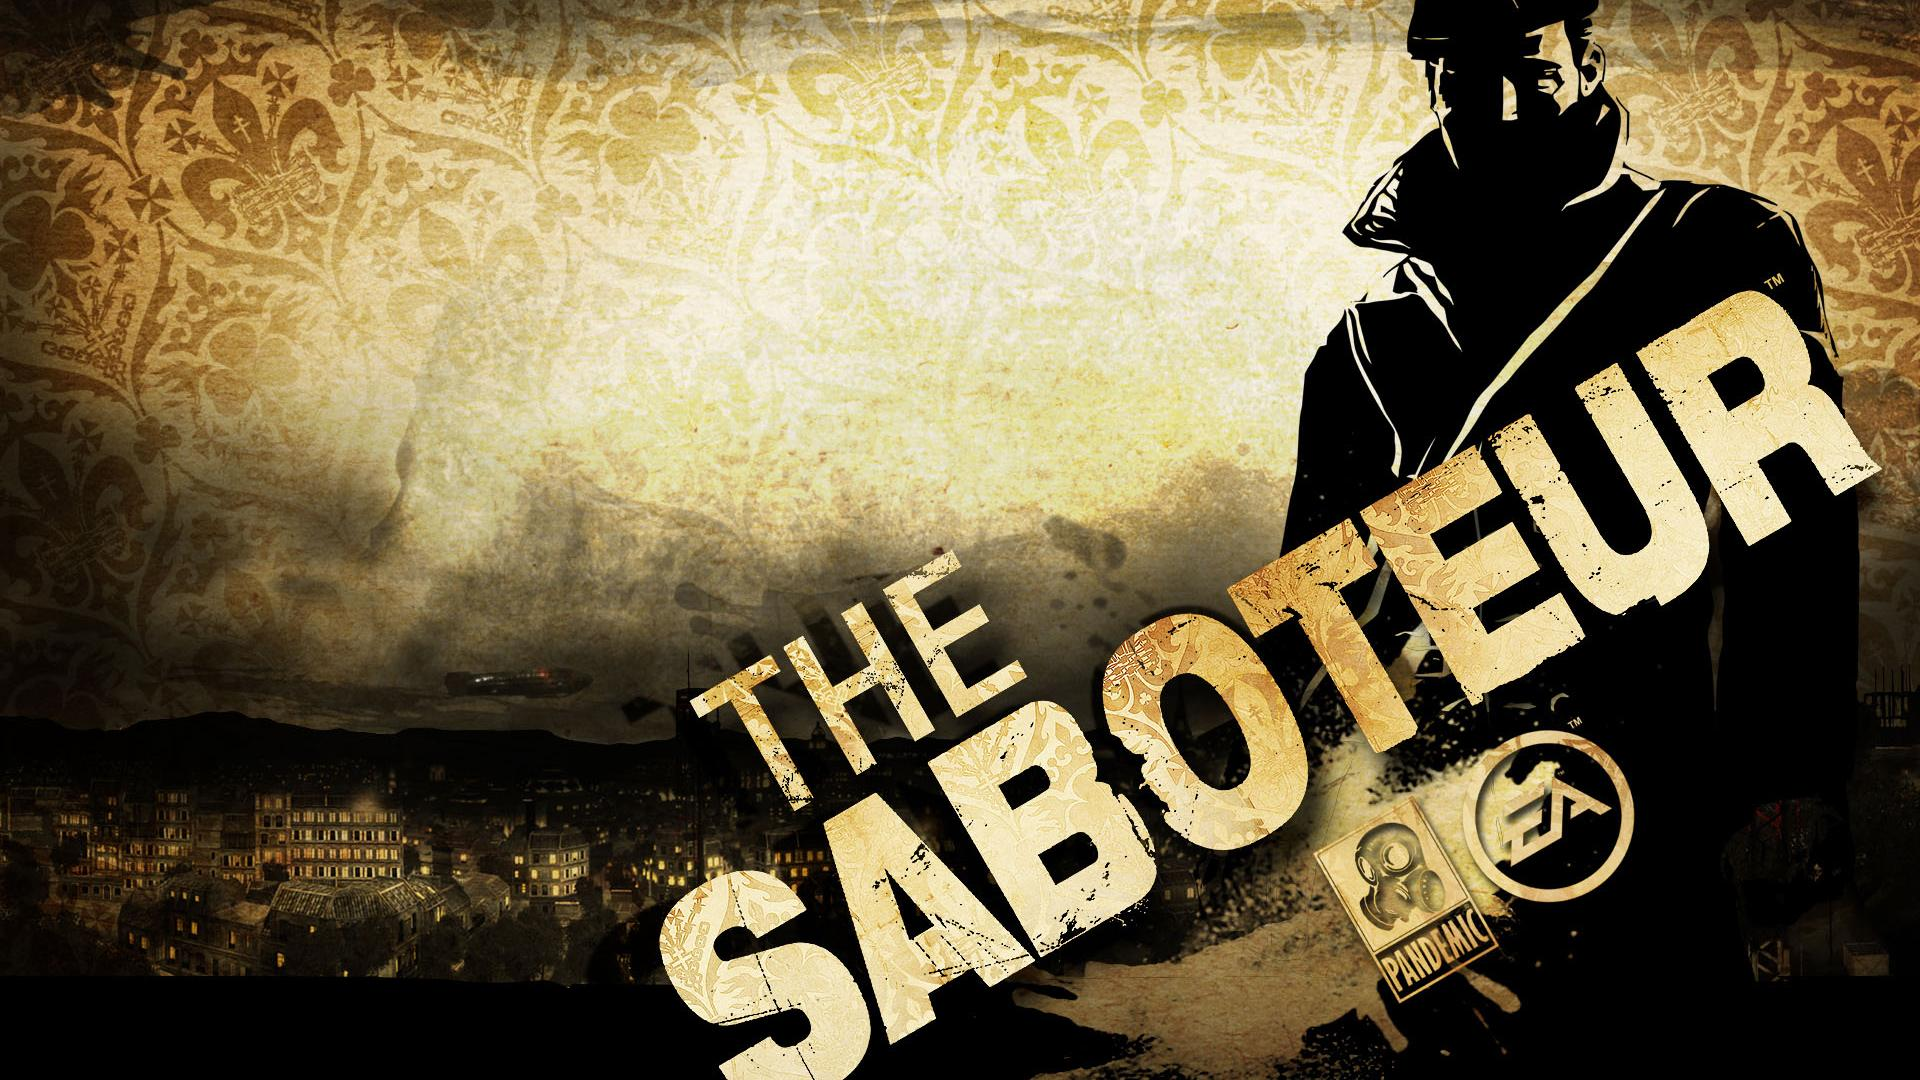 A Sequel To The Saboteur Was Cancelled When Pandemic